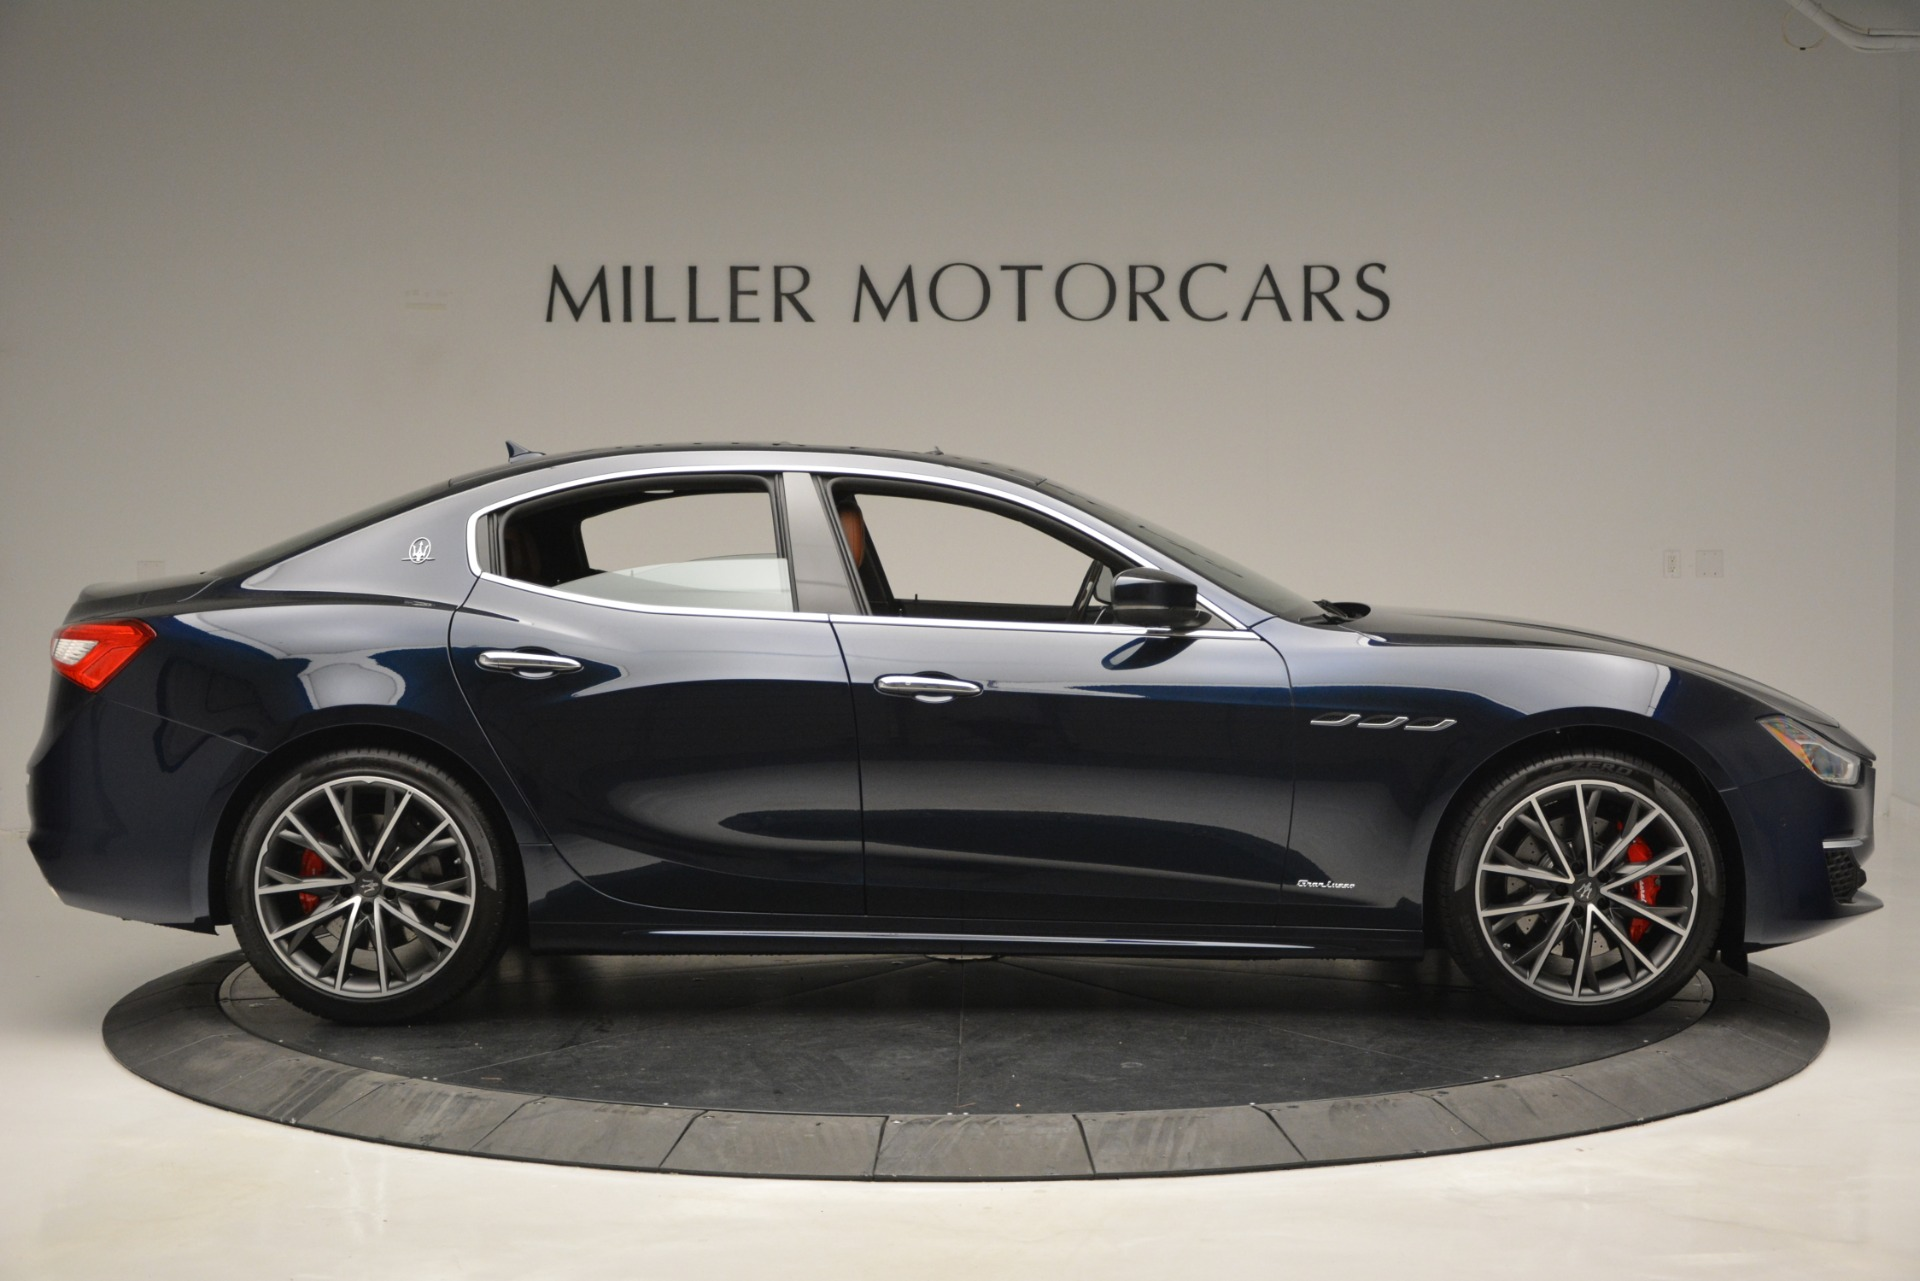 New 2019 Maserati Ghibli S Q4 GranSport For Sale In Westport, CT 2948_p13